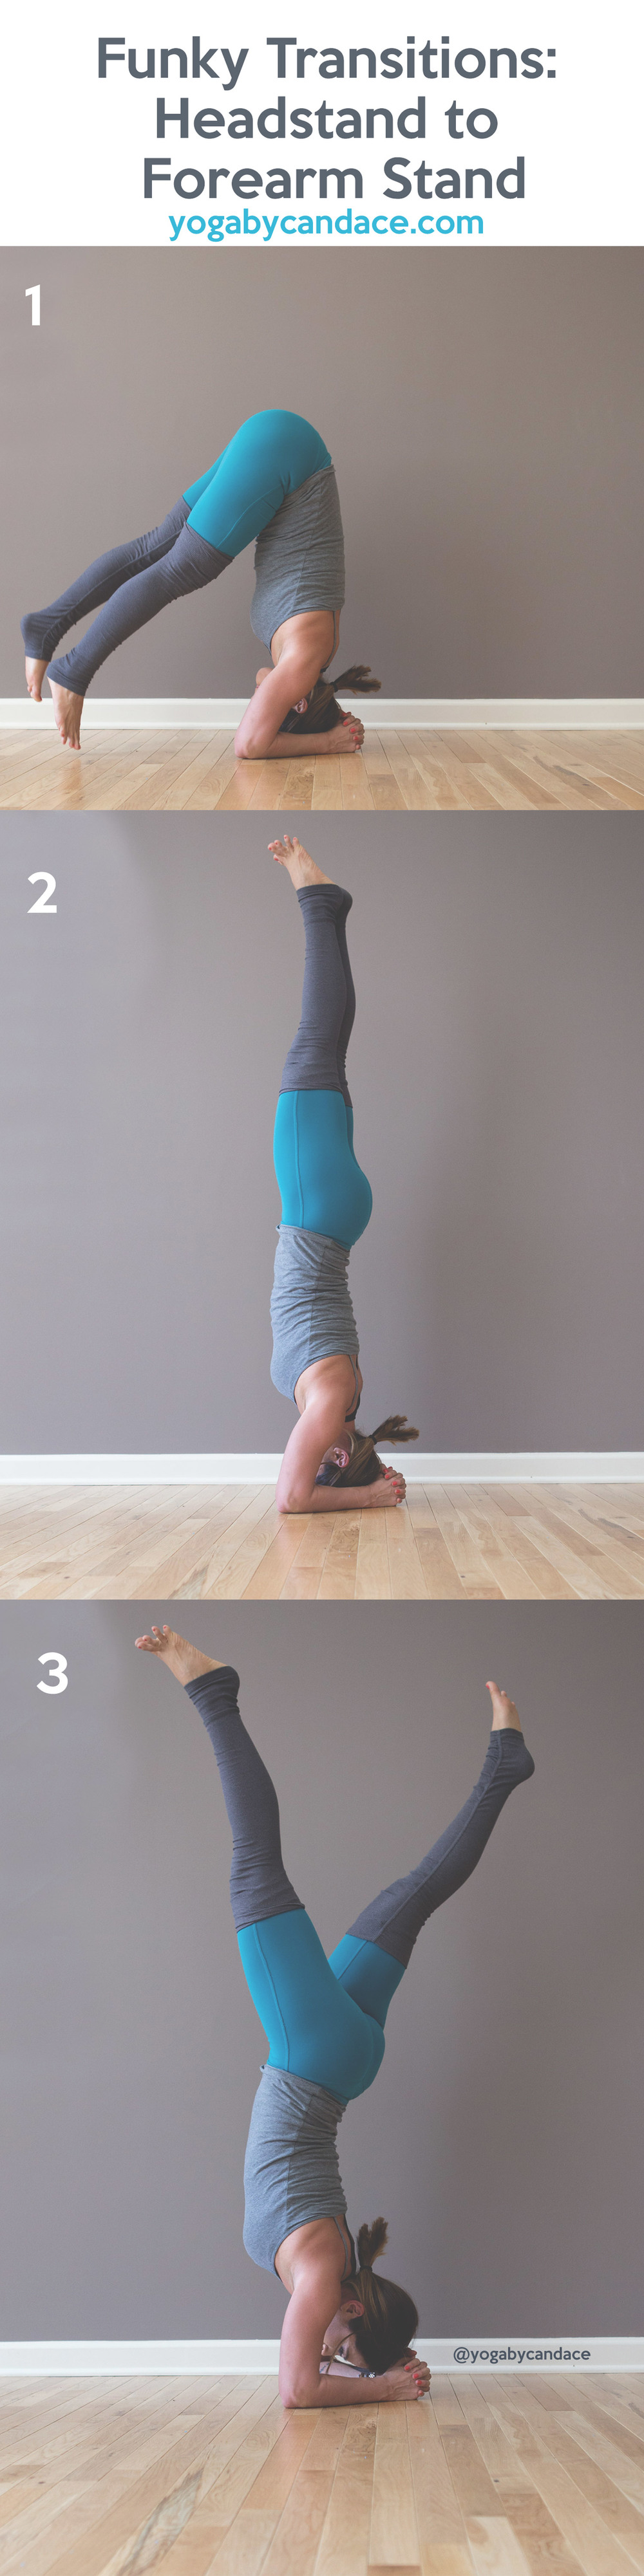 Pin now and practice later - funky transition from headstand to forearm stand